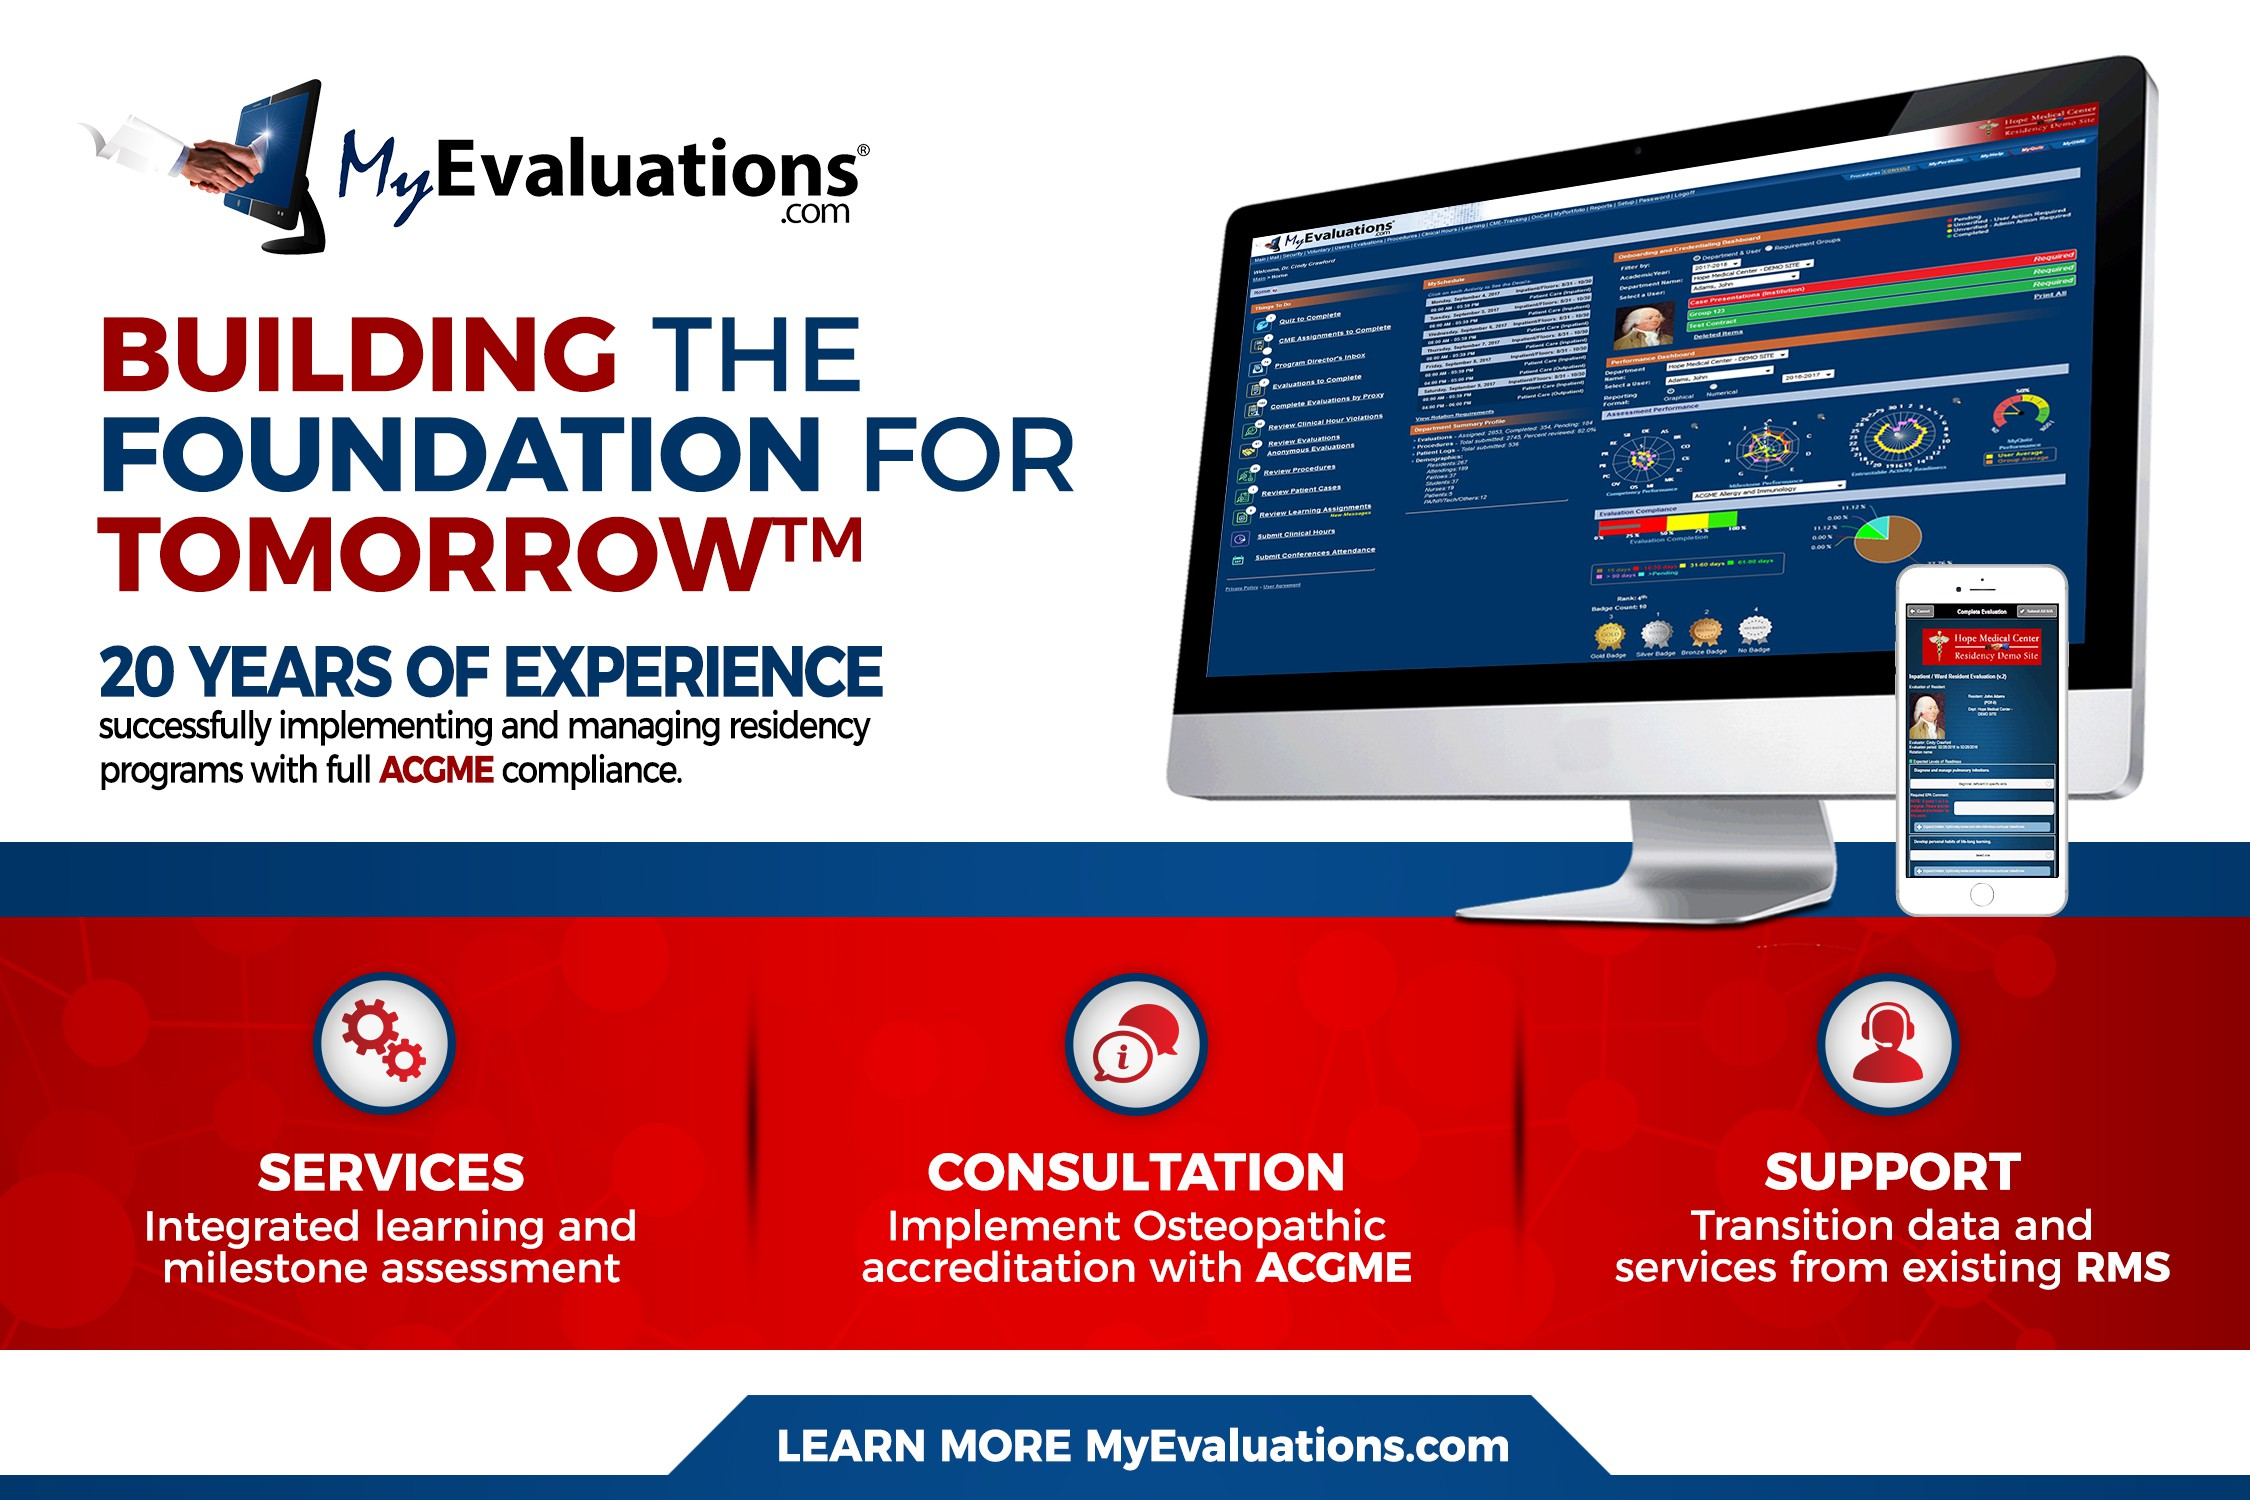 Promotional ads for medical education website MyEvaluations.com